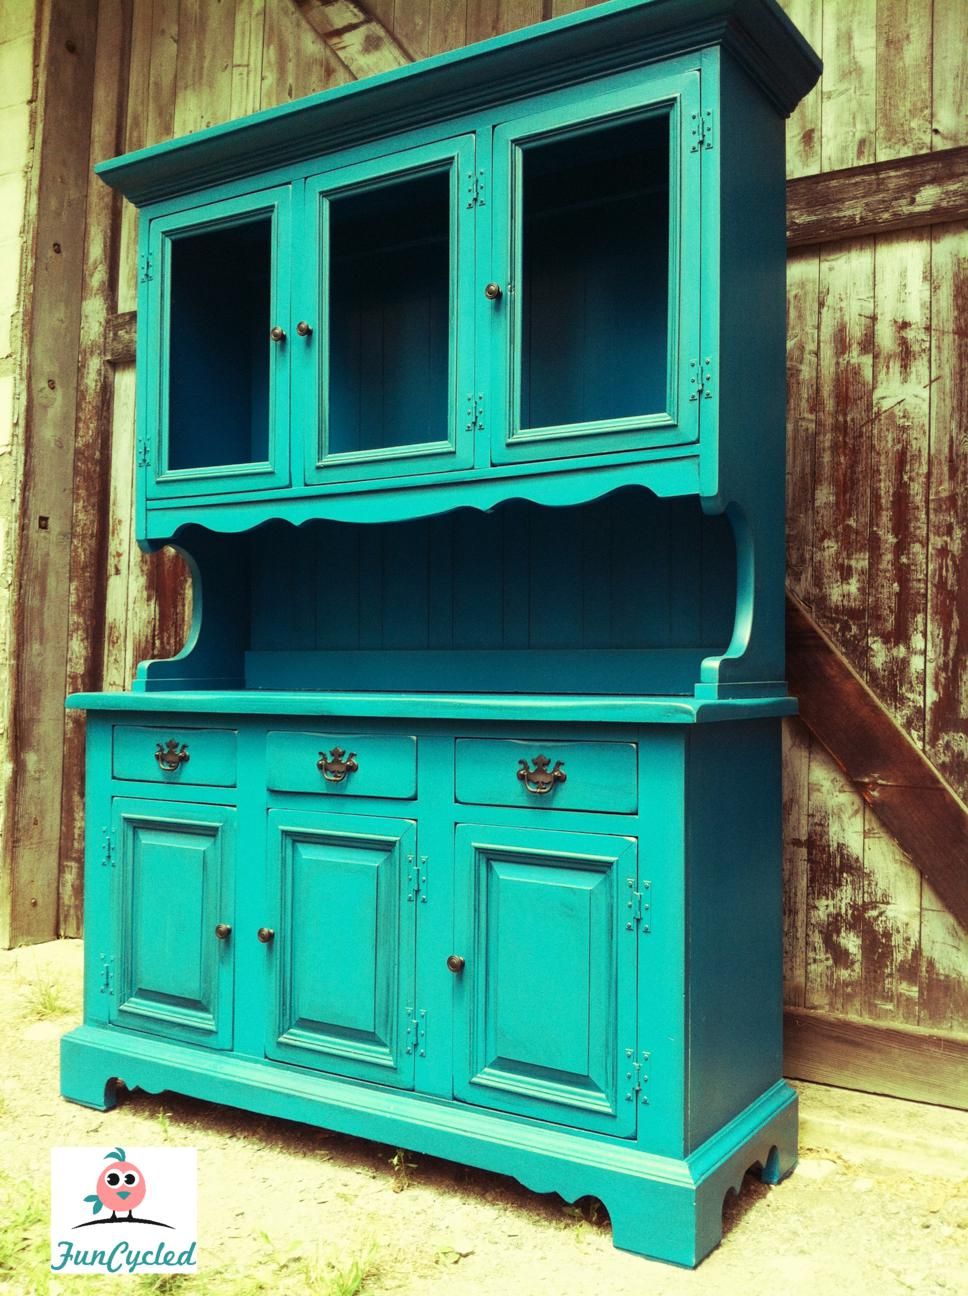 Teal Furniture furniture portfolio – funcycled